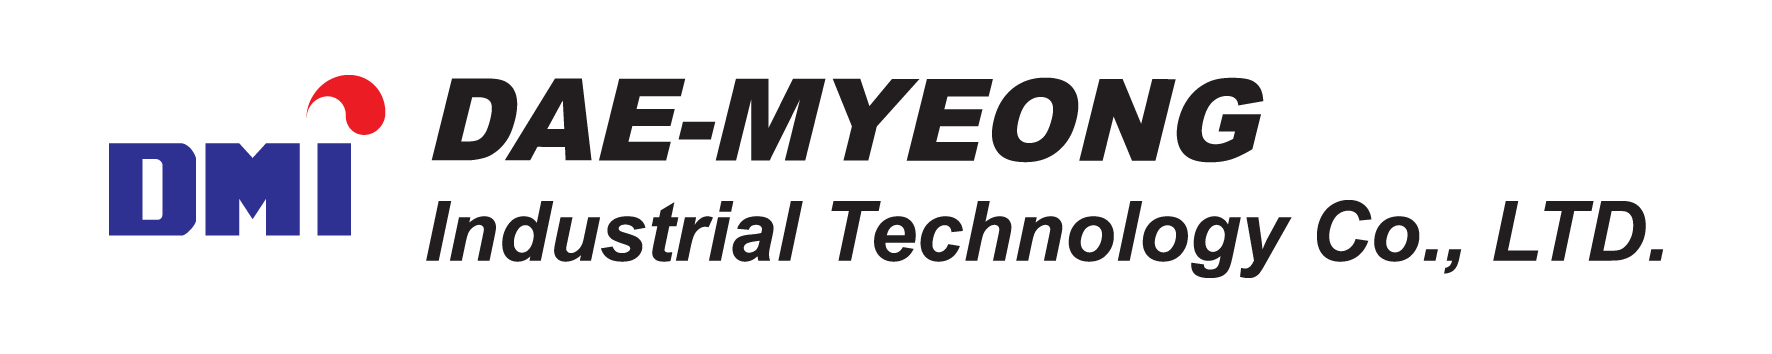 DAEMYEONG Industrial Technology Co LTD